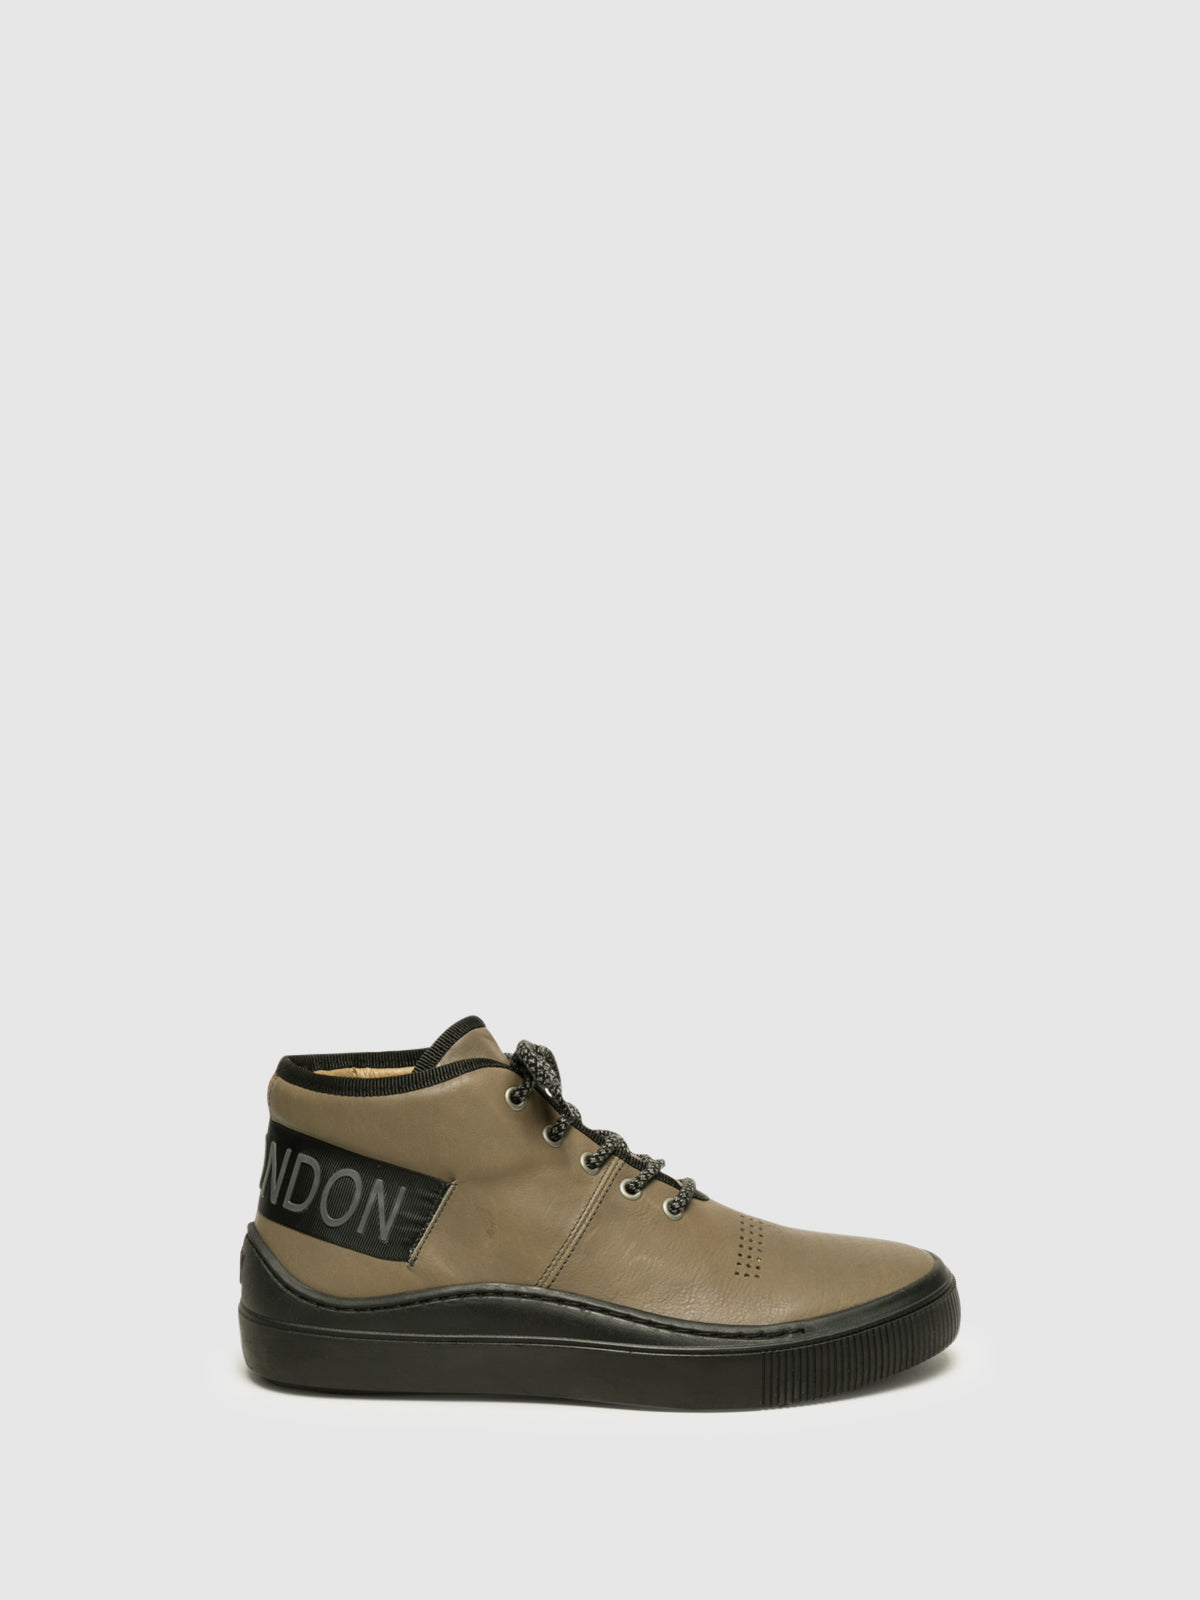 Fly London Zapatillas Altas en color Gris